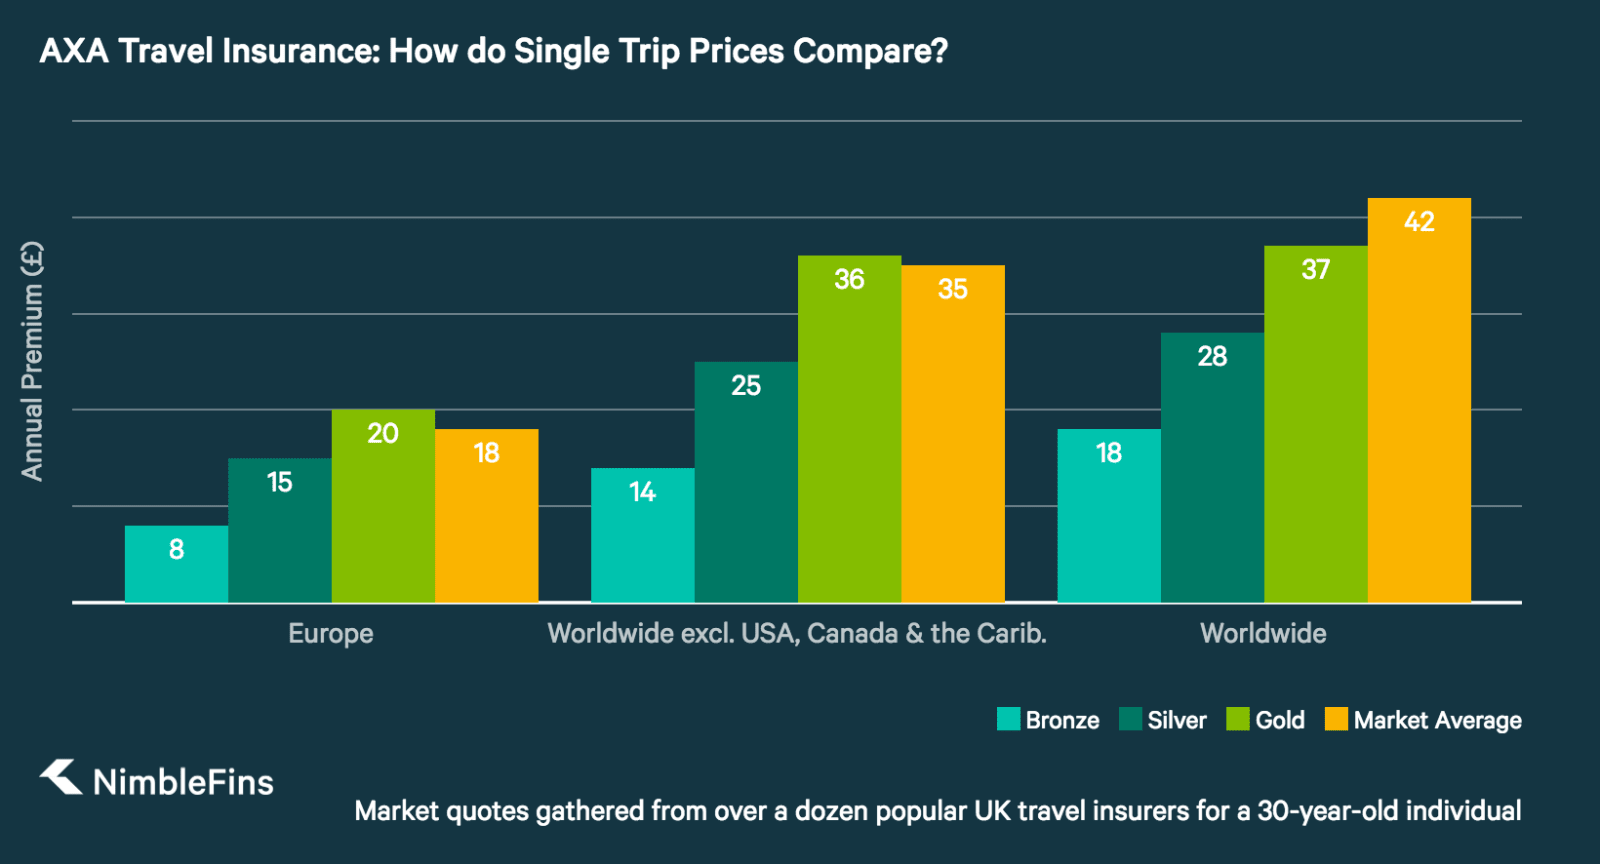 chart showing AXA single-trip travel insurance prices compared to market averages